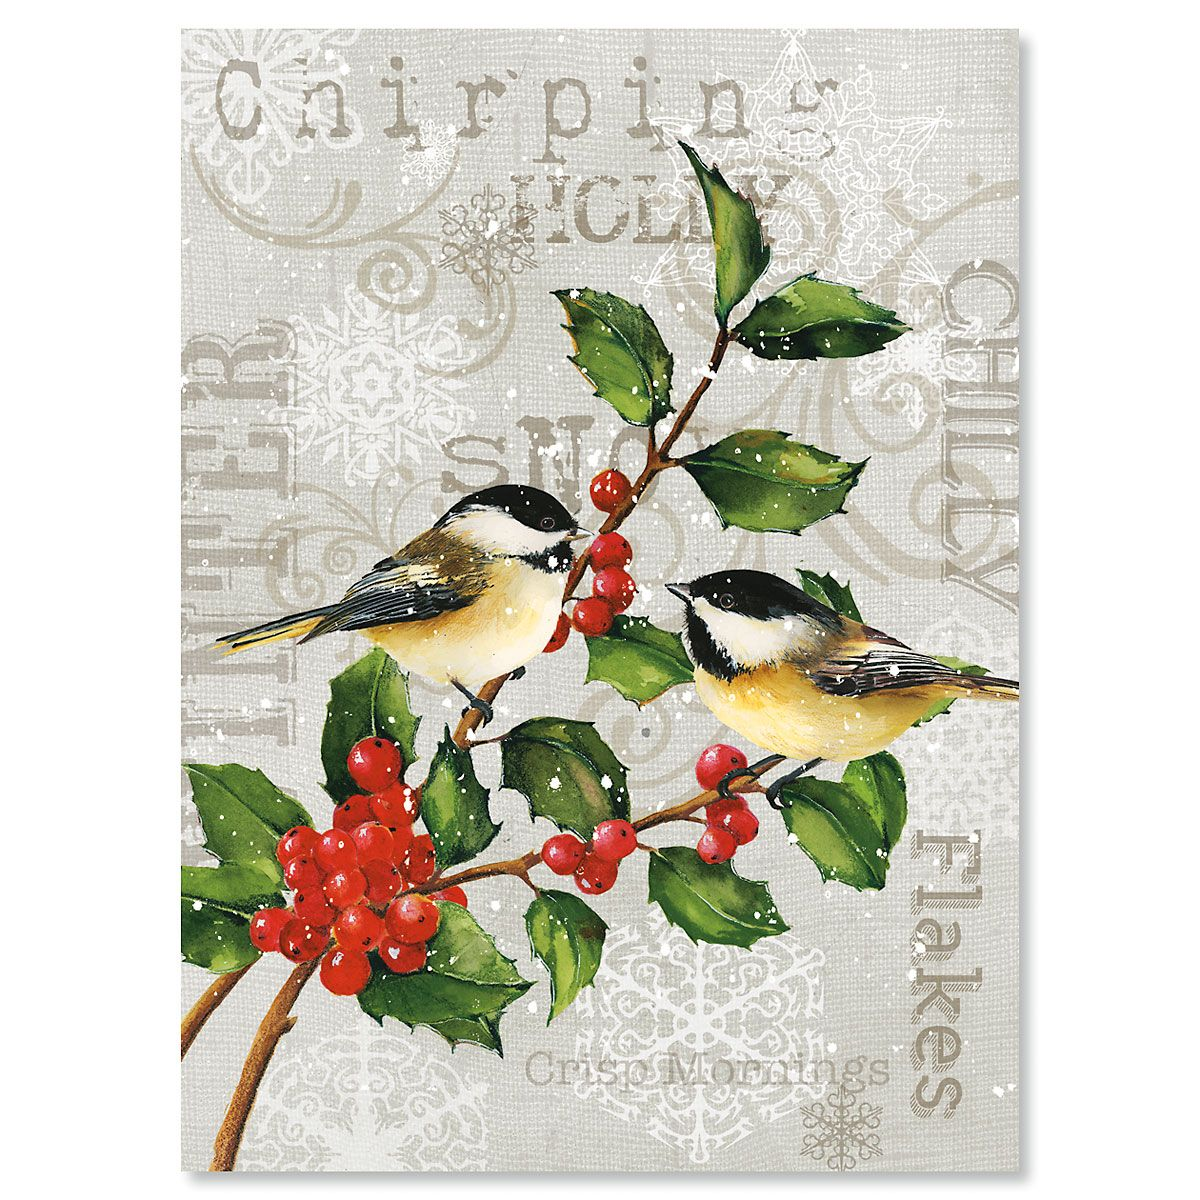 Chickadees and Holly Nonpersonalized Christmas Cards - Set of 18